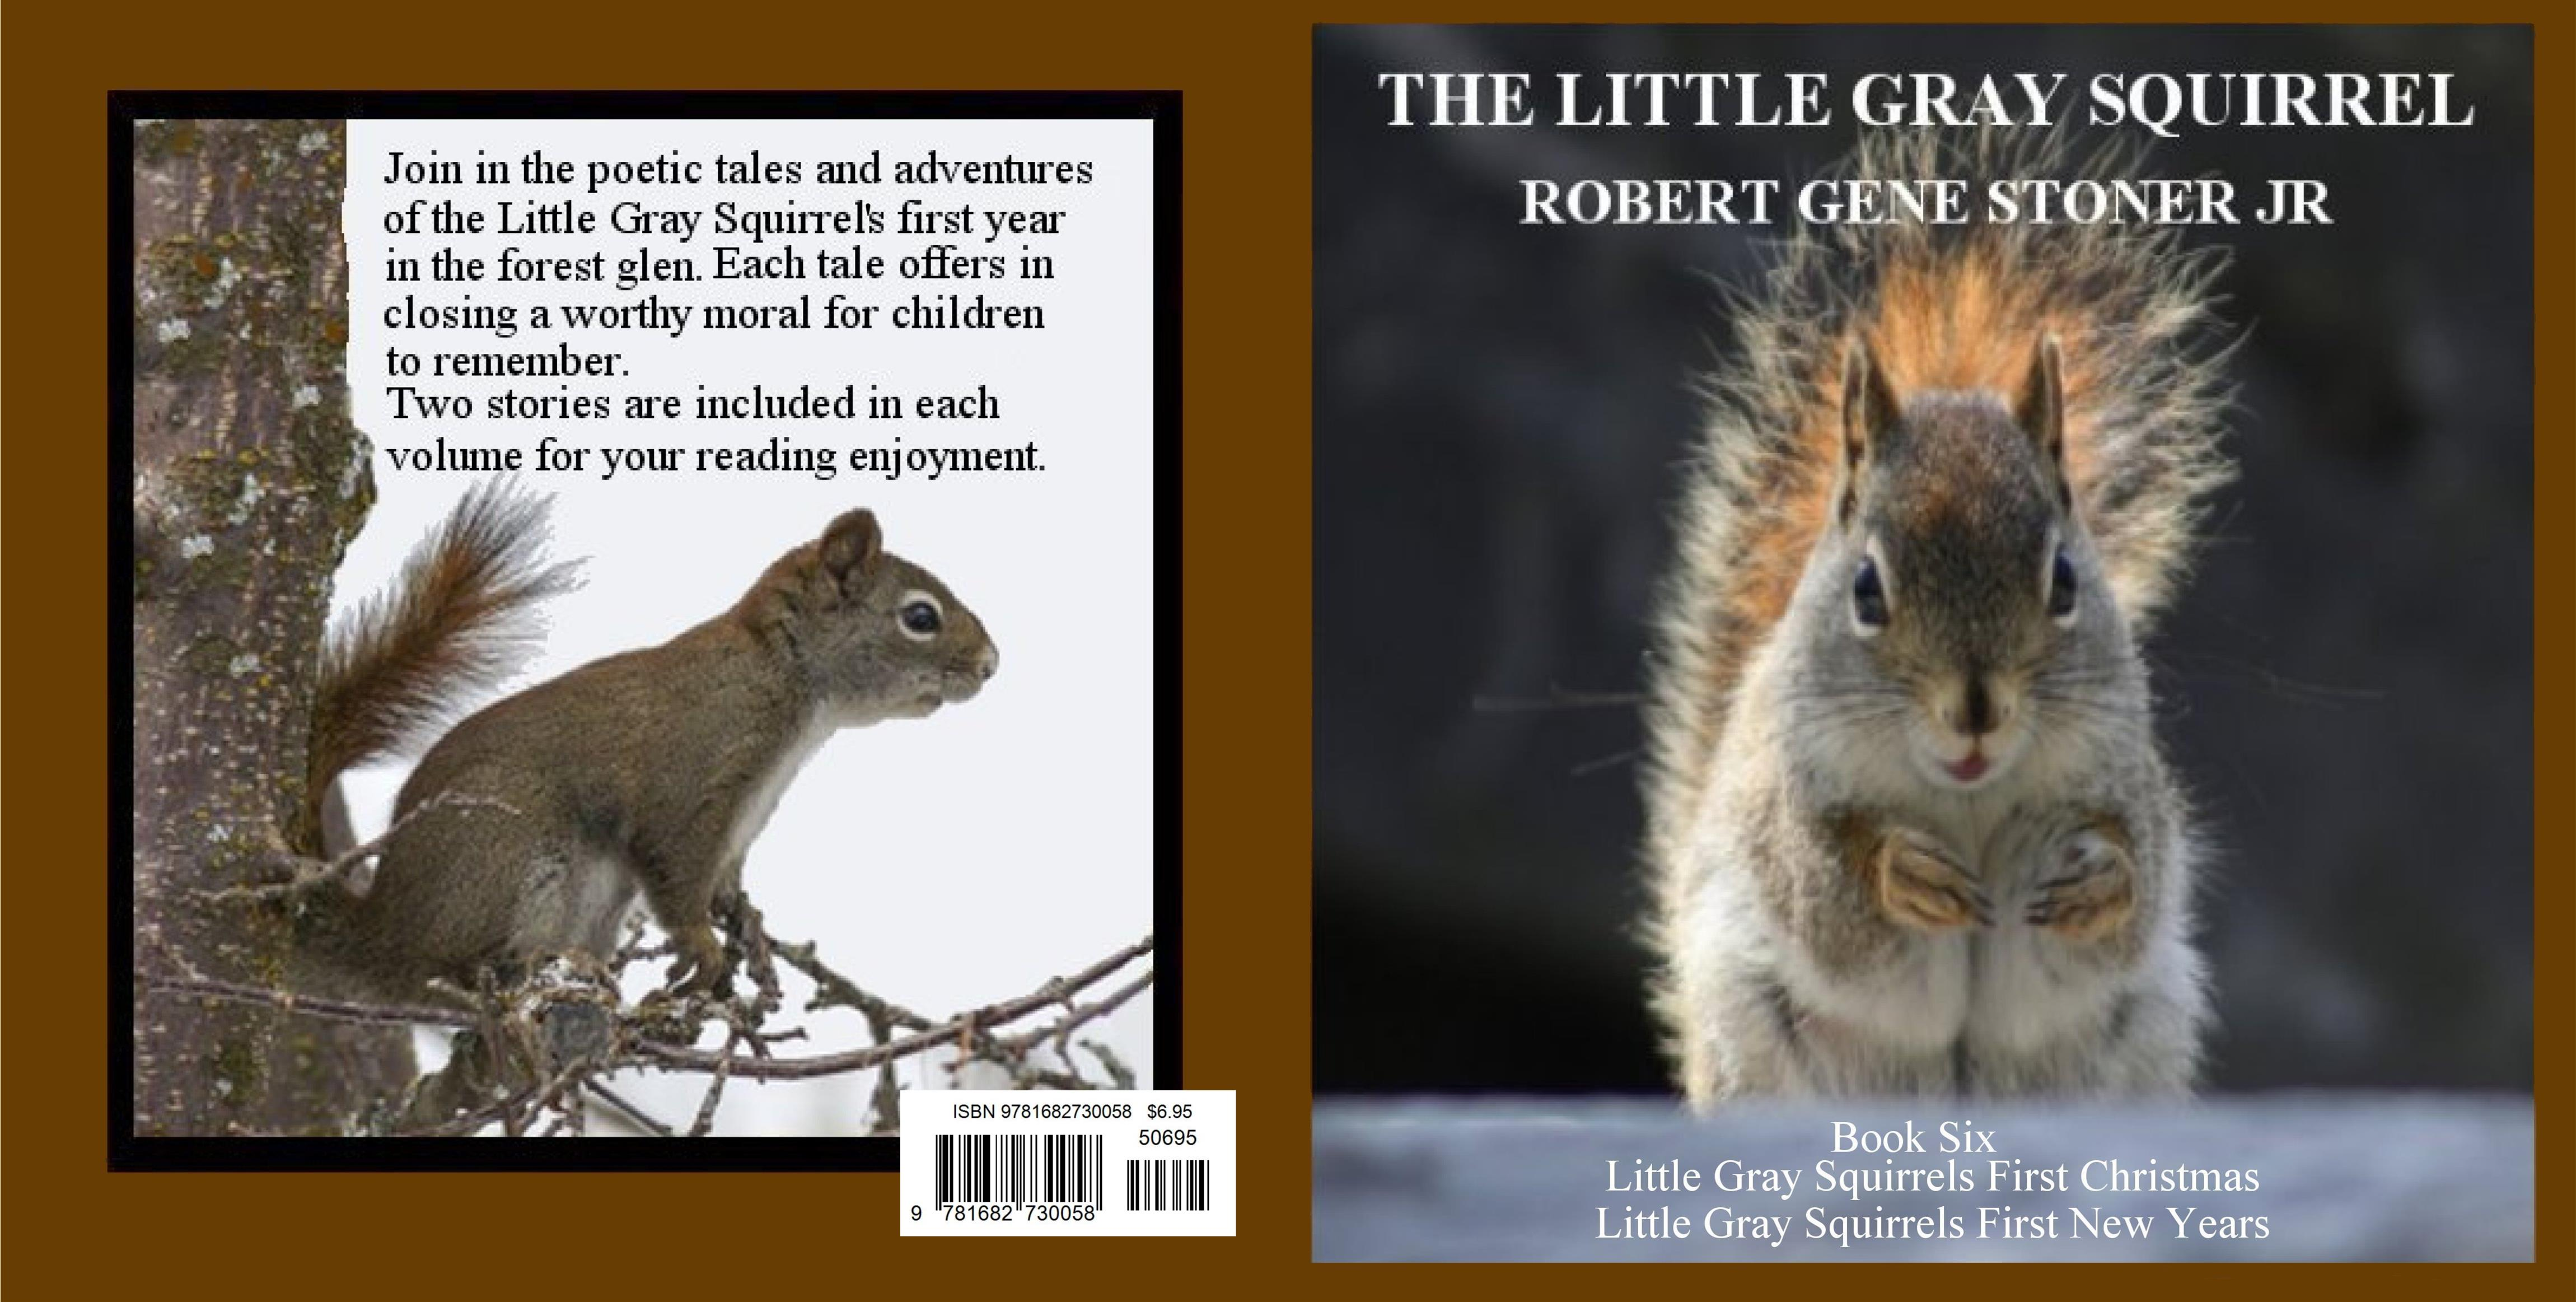 Little Gray Squirrel - Book Six cover image